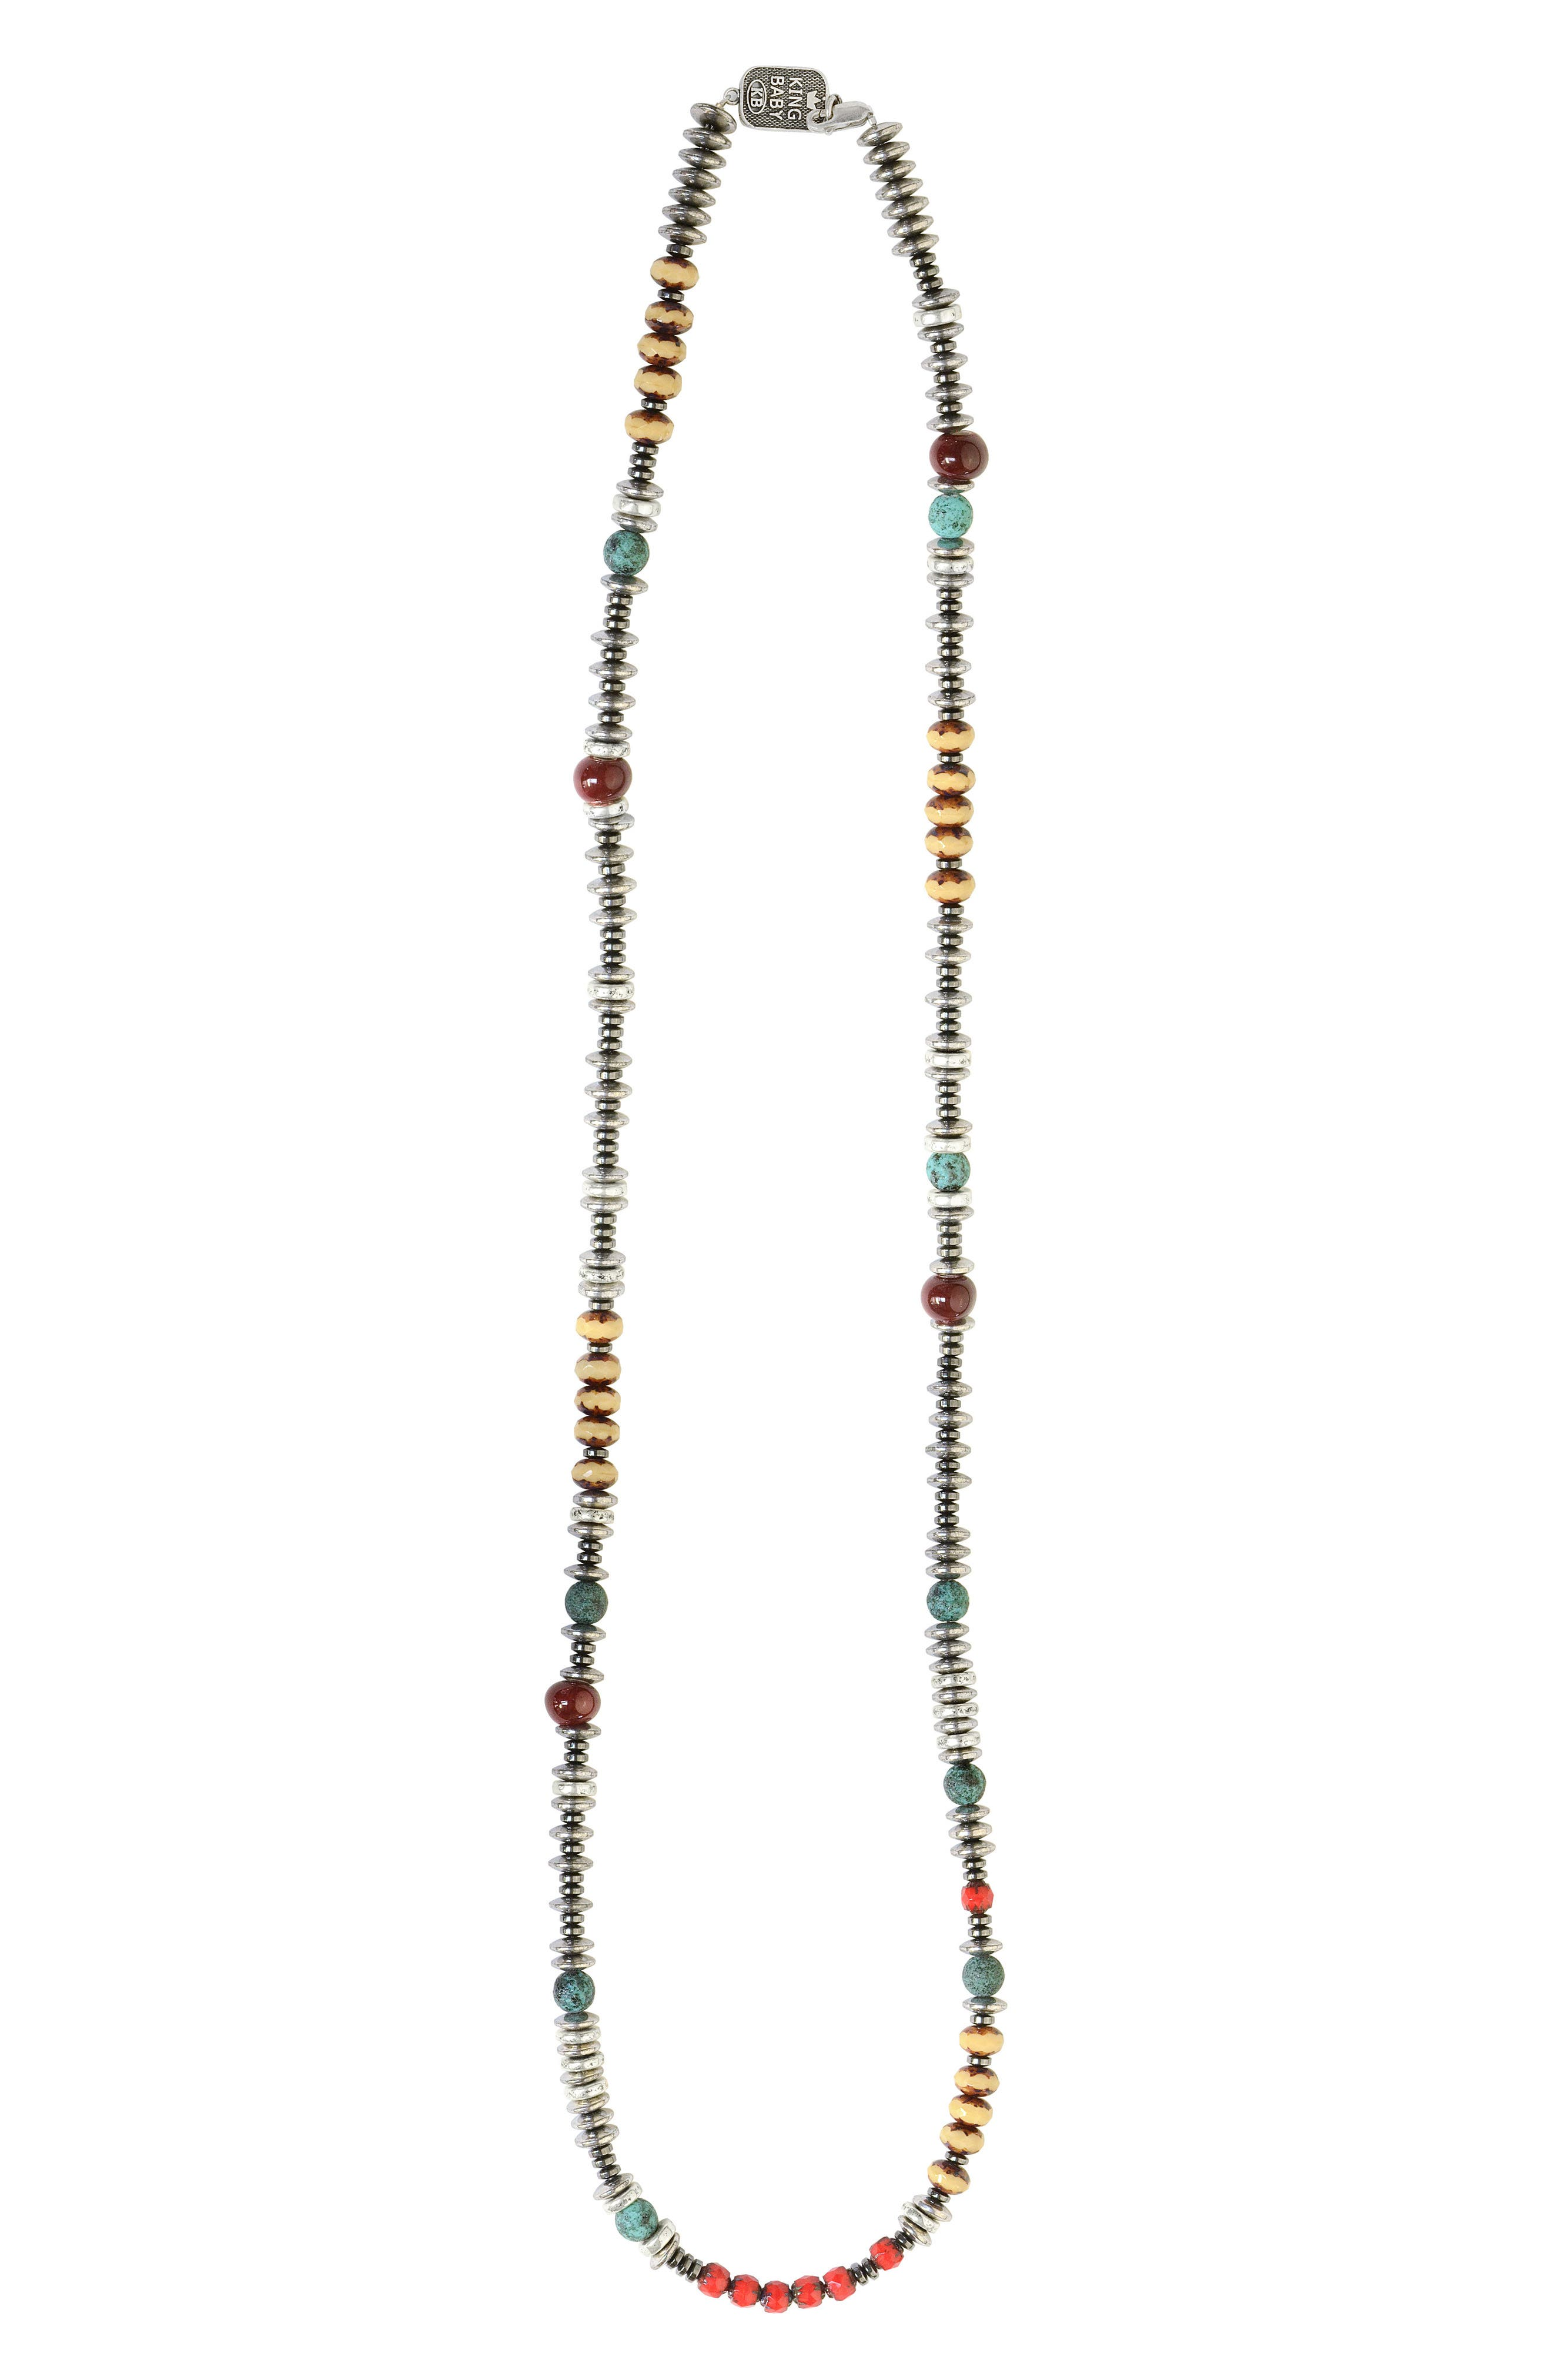 American Voices Ceramic & Glass Bead Necklace,                             Main thumbnail 1, color,                             TURQUOISE